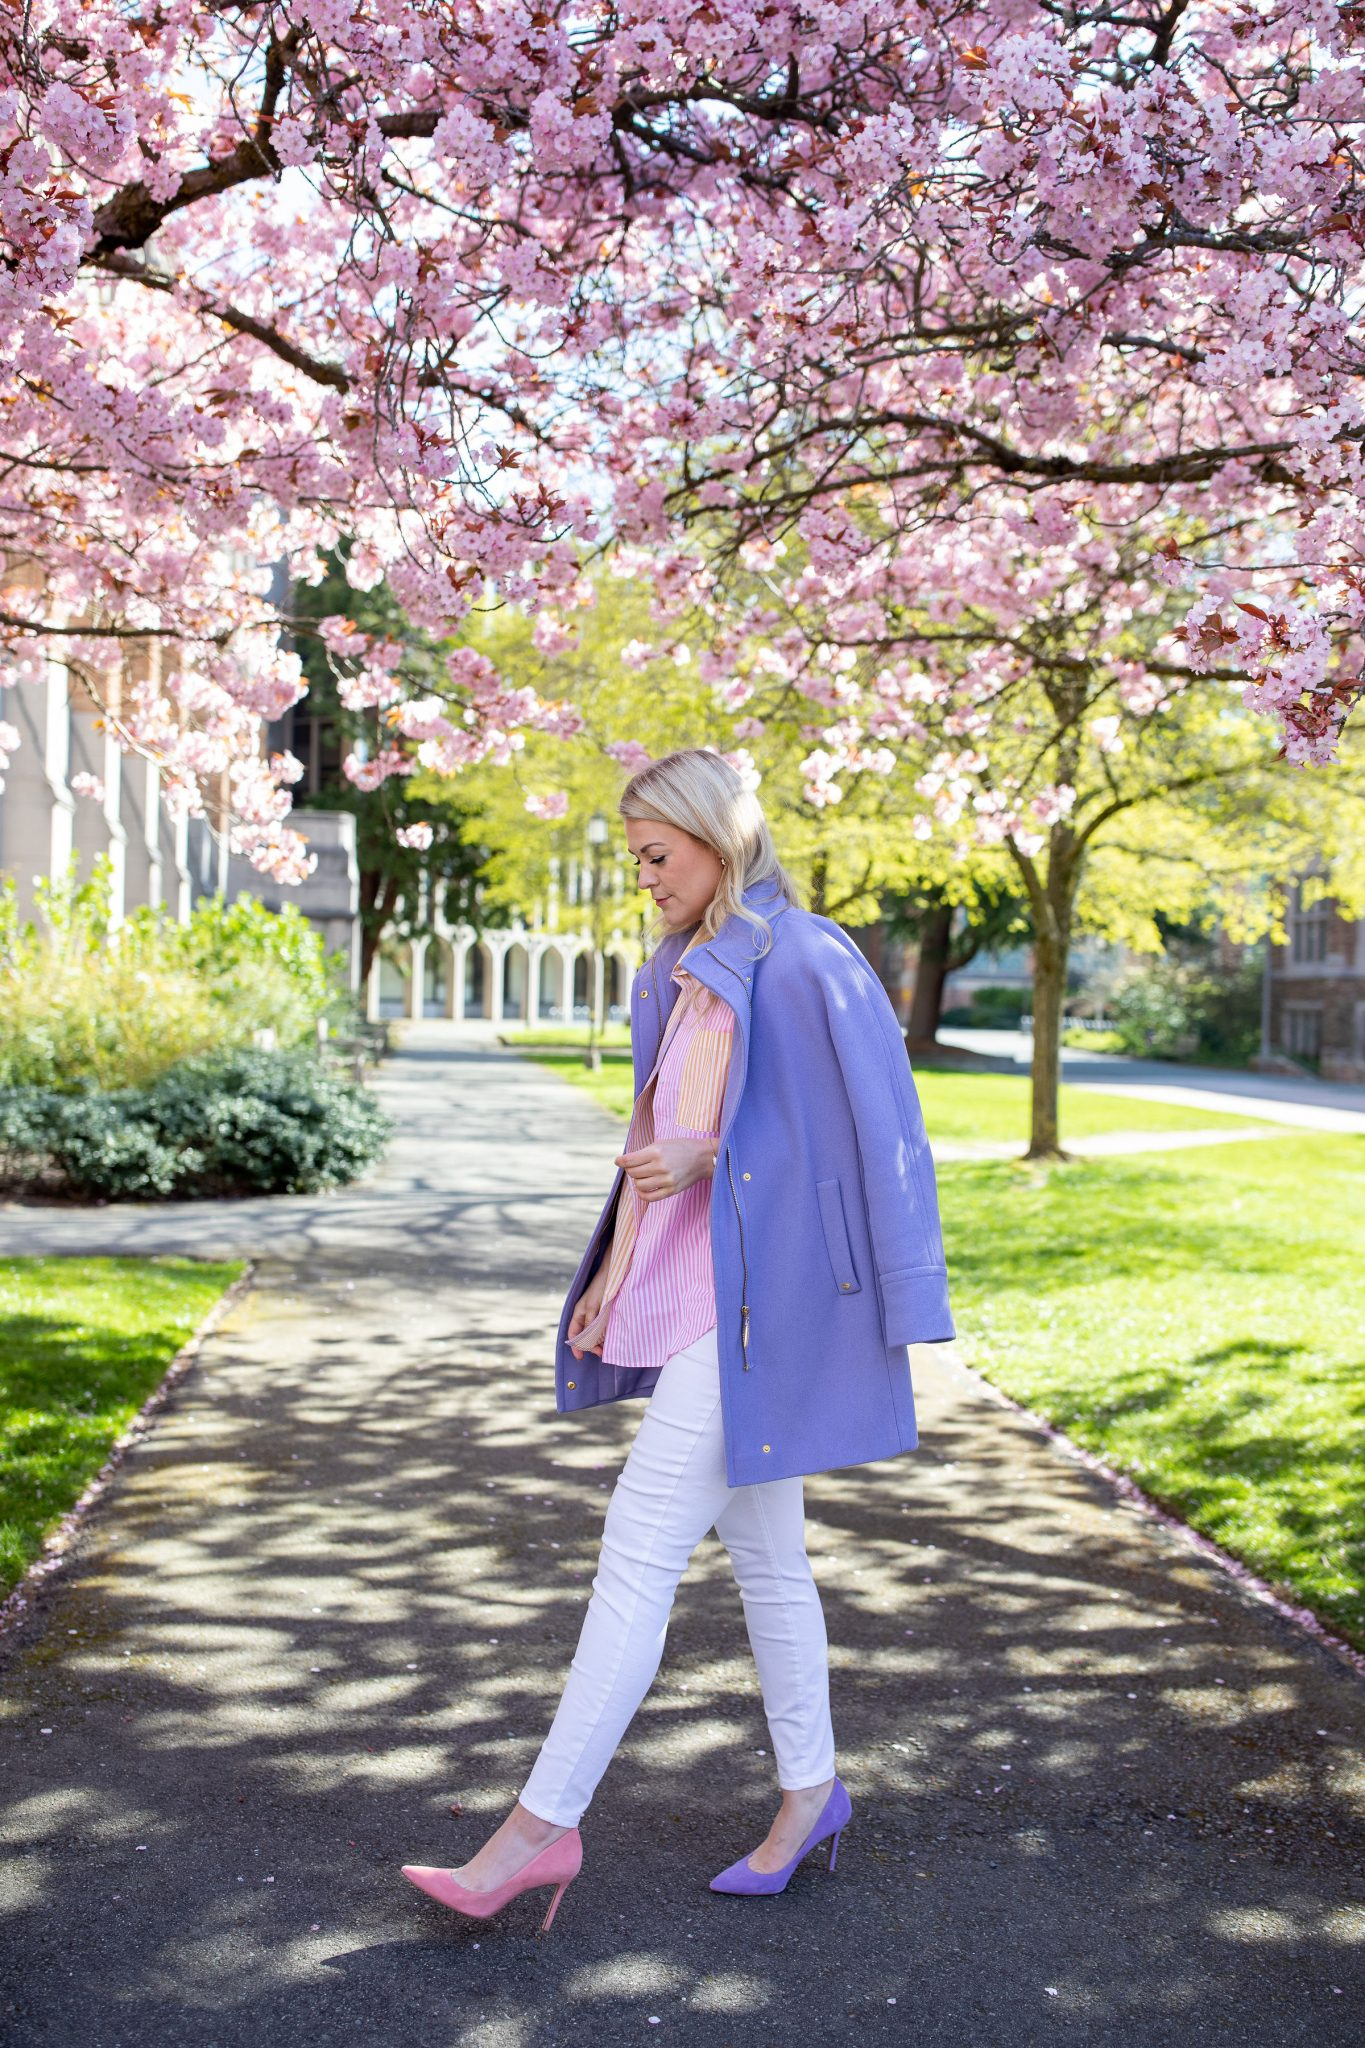 Purple Coat by popular Seattle tall fashion blog, Whit Wanders: image of a woman standing by a tree with pink cherry blossoms and wearing a purple coat, white pants, pink and purple suede heel shoes, and a oversized stripe shirt.